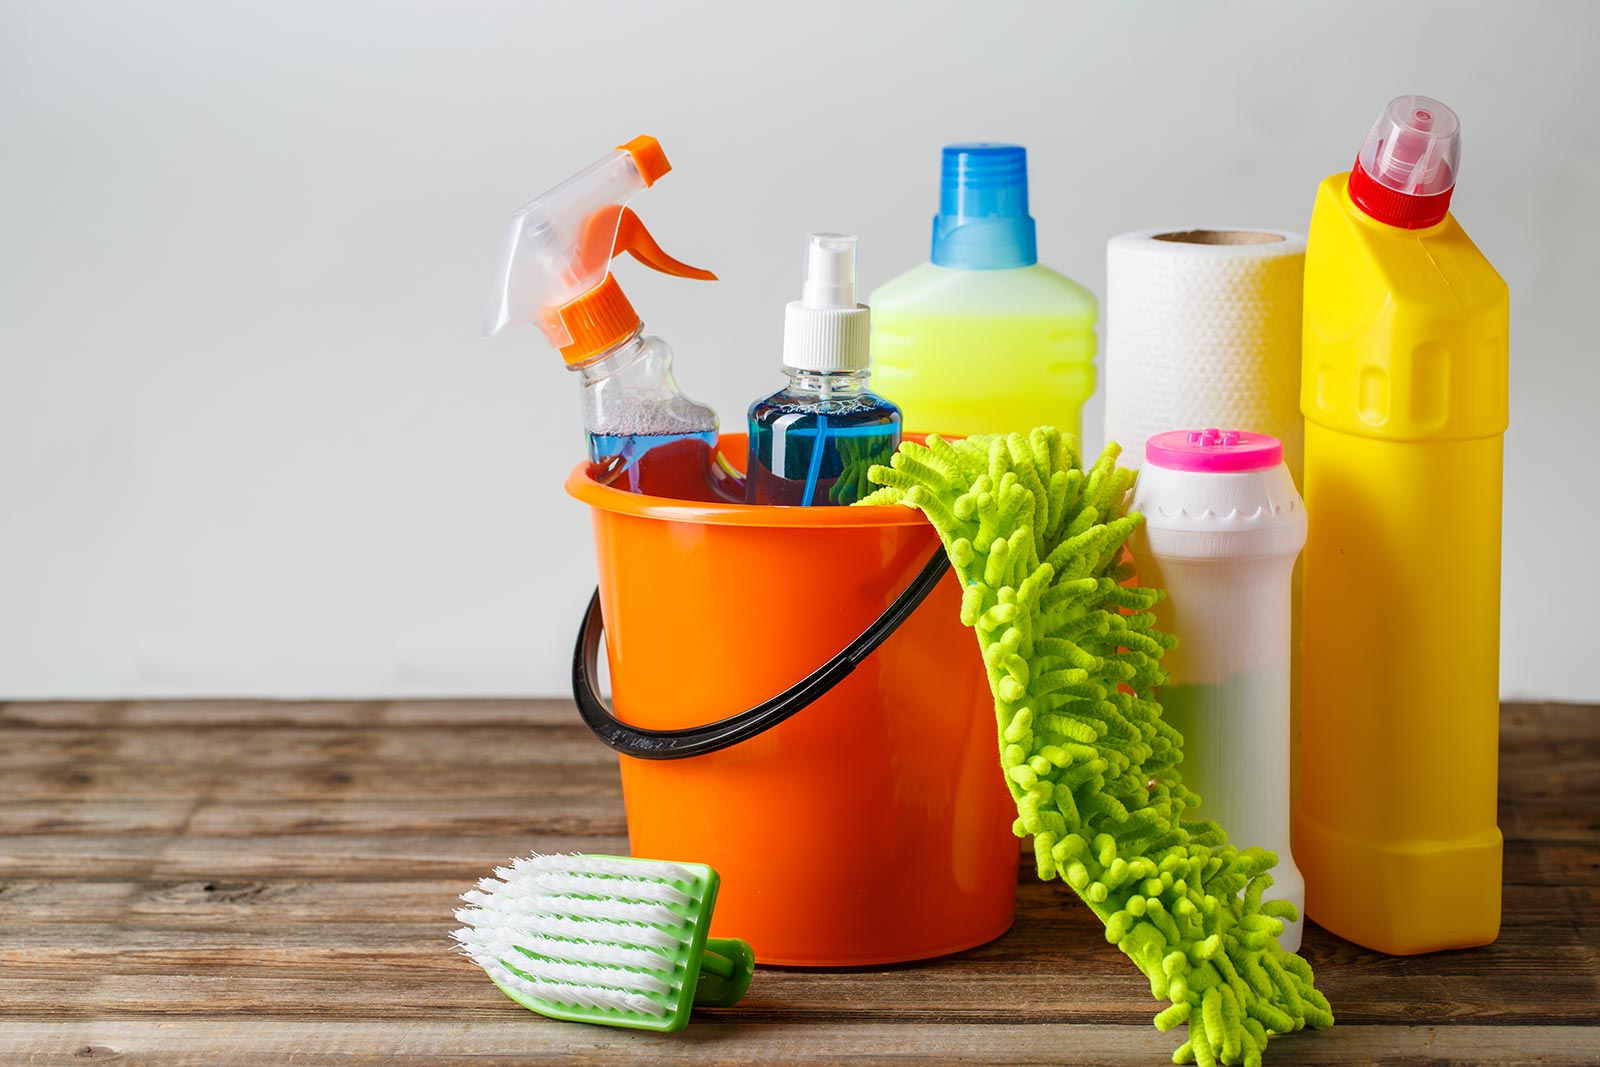 Spring Cleaning Tips to Spark Joy